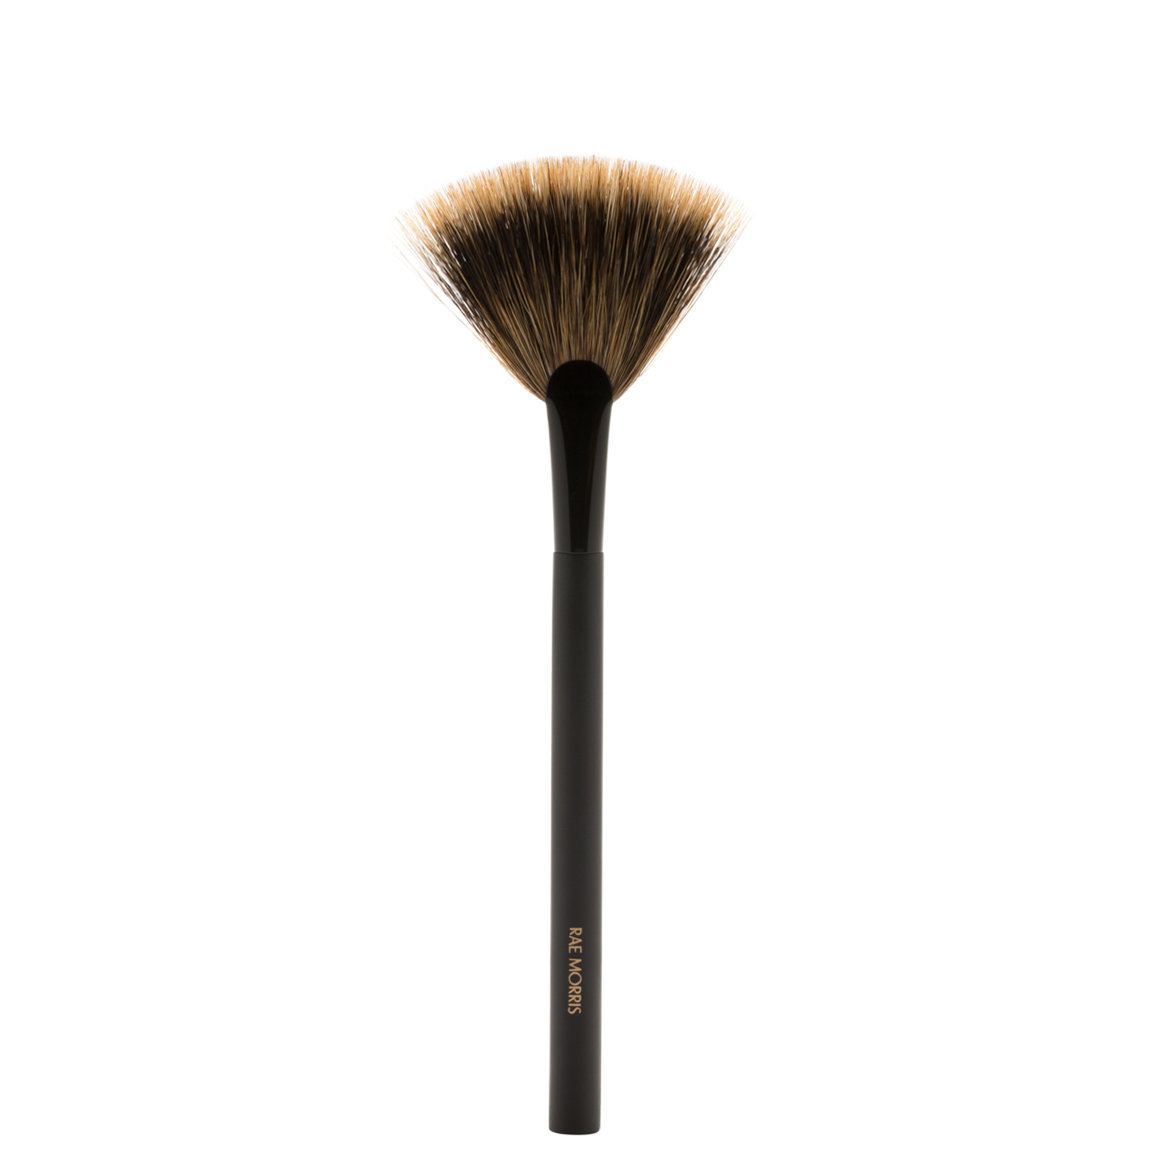 Rae Morris Jishaku Brush 25: Fan Highlighter  Jishaku Brush 25: Fan Highlighter product smear.